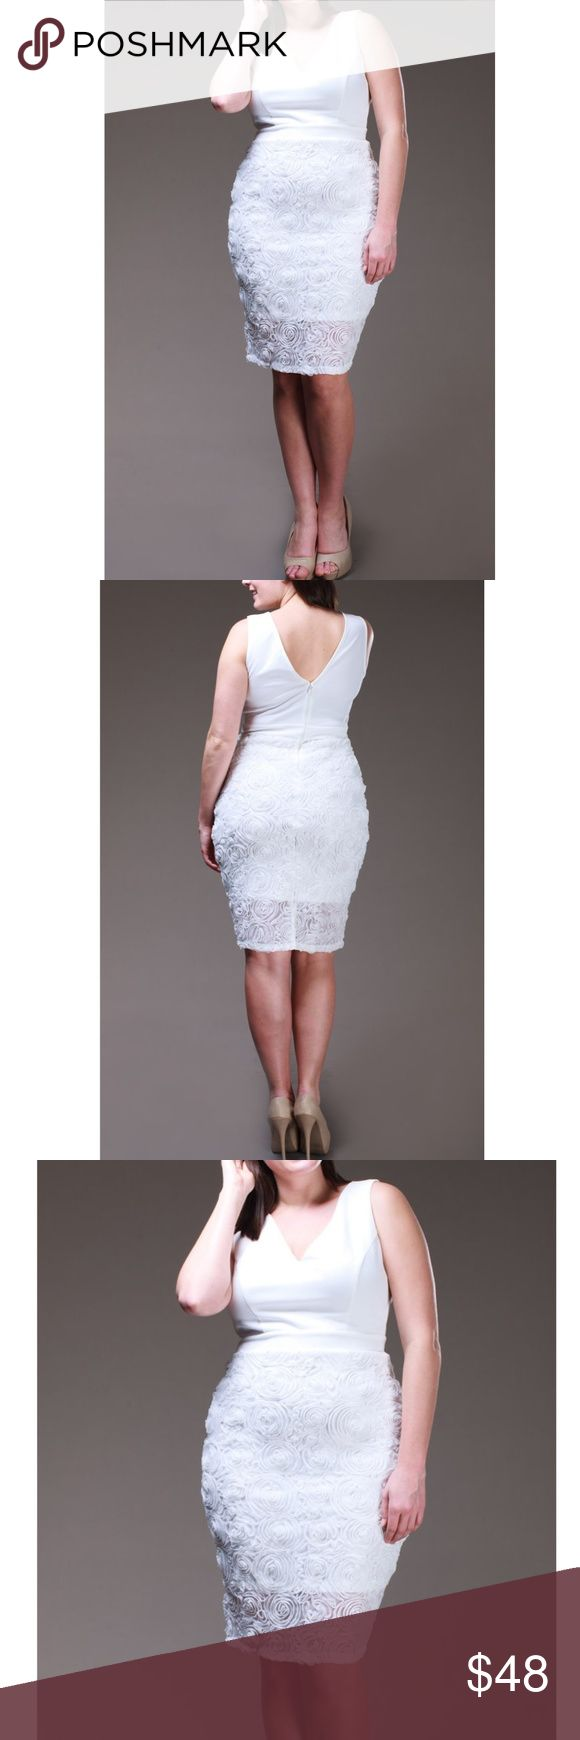 Plus White Floral Mesh Rosette Skirt Bodycon Dress Ivory White Bodycon Midi Dress. Featuring a solid double V-neck sleeveless top and a lined mesh Rosette embroidered skirt. Back zip closure. Made of soft stretchy fabric.   Size 1X 14/16: Bust 36-41 Waist 32-35 Hips 40-43 Size 2X 18/20: Bust 42-45 Waist 36-39 Hips 44-47 Size 3X 22/24: Bust 46-49 Waist 40-43 Hips 48-51  Size chart provided as a guidance. Dresses Midi